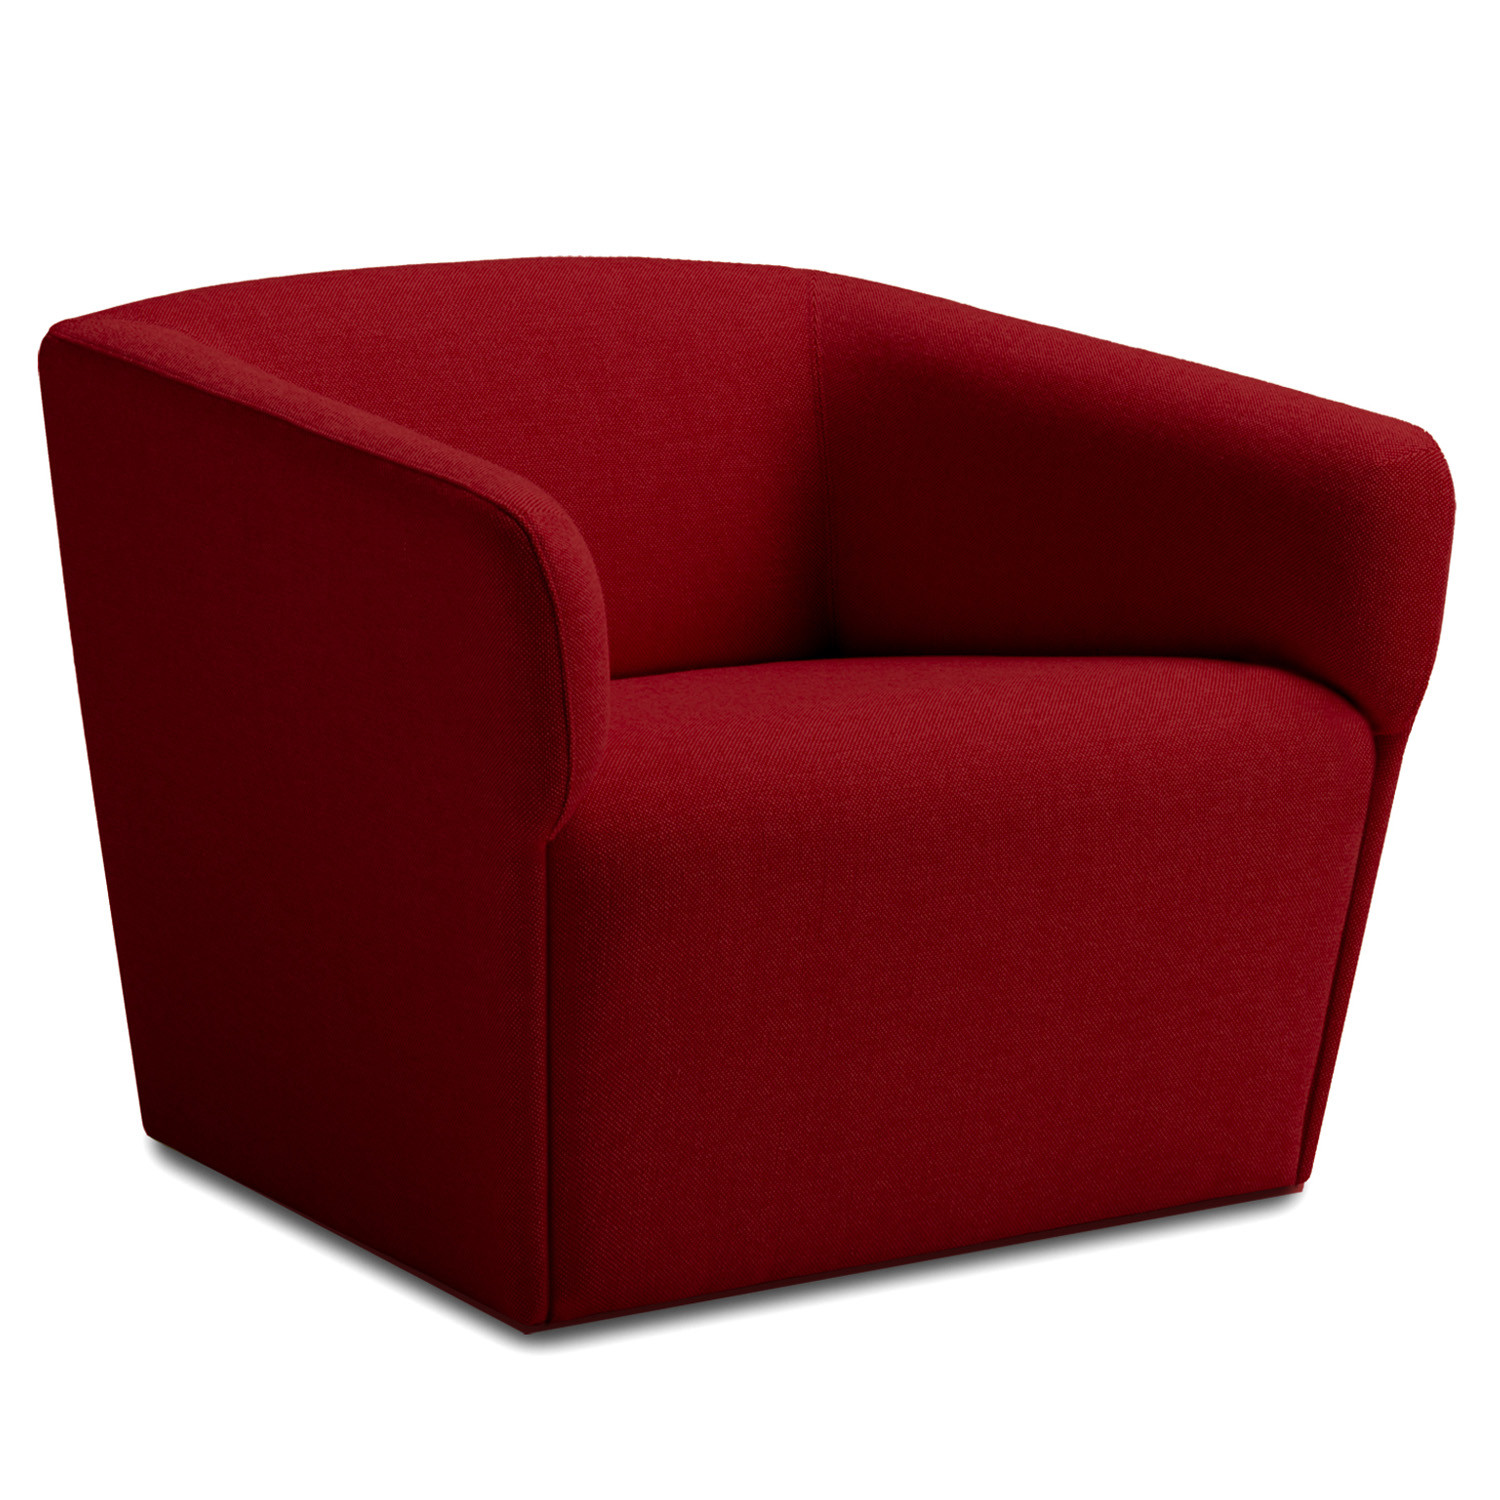 Tonic Lounge Easychair in Red